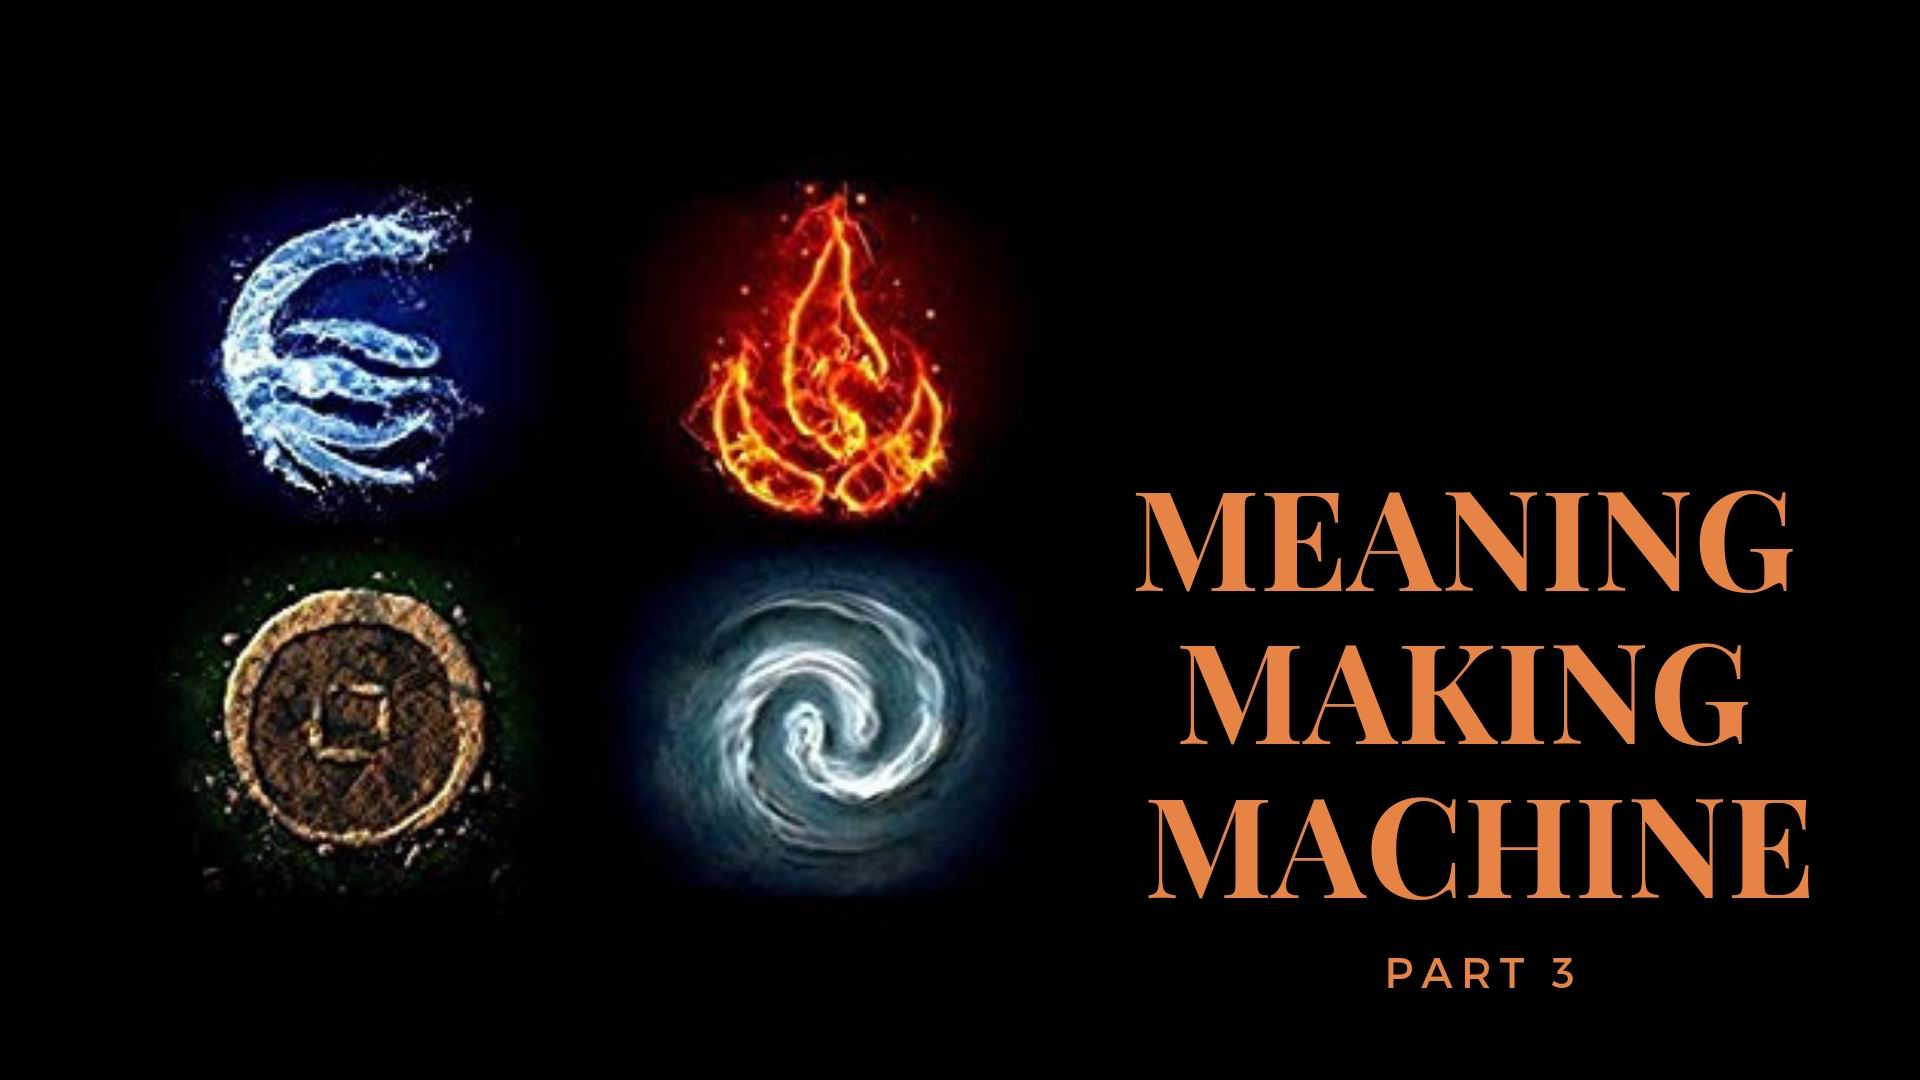 044 – Meaning Making Machine (Avatar State)